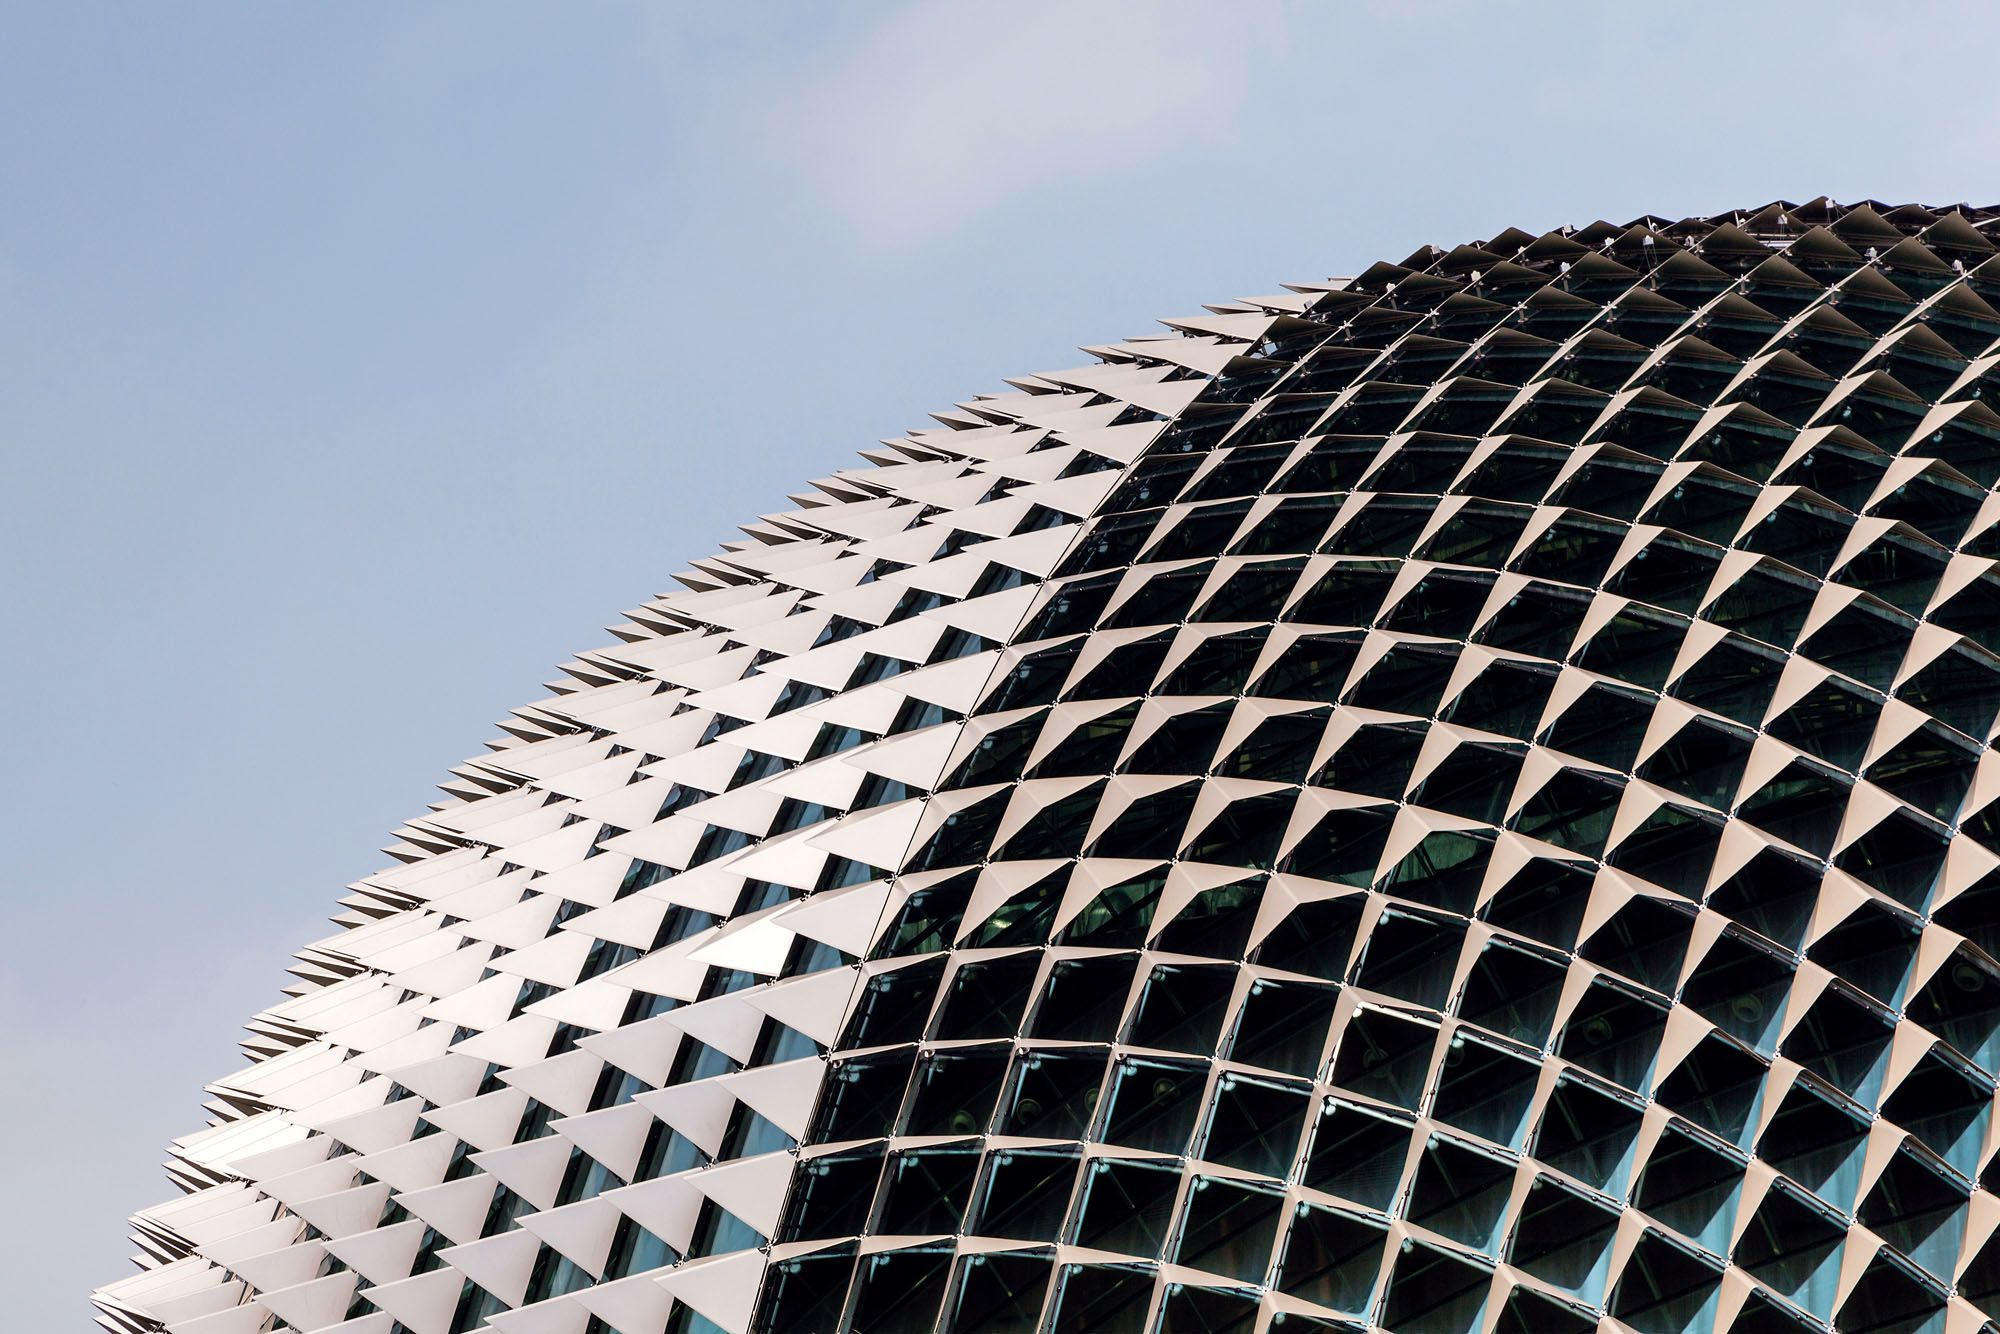 The aluminium sunshades that clad the twin domes of the Esplanade – Theatres on the Bay give the performing arts centre a distinctive exterior that reminds one of the hugely popular king of fruits